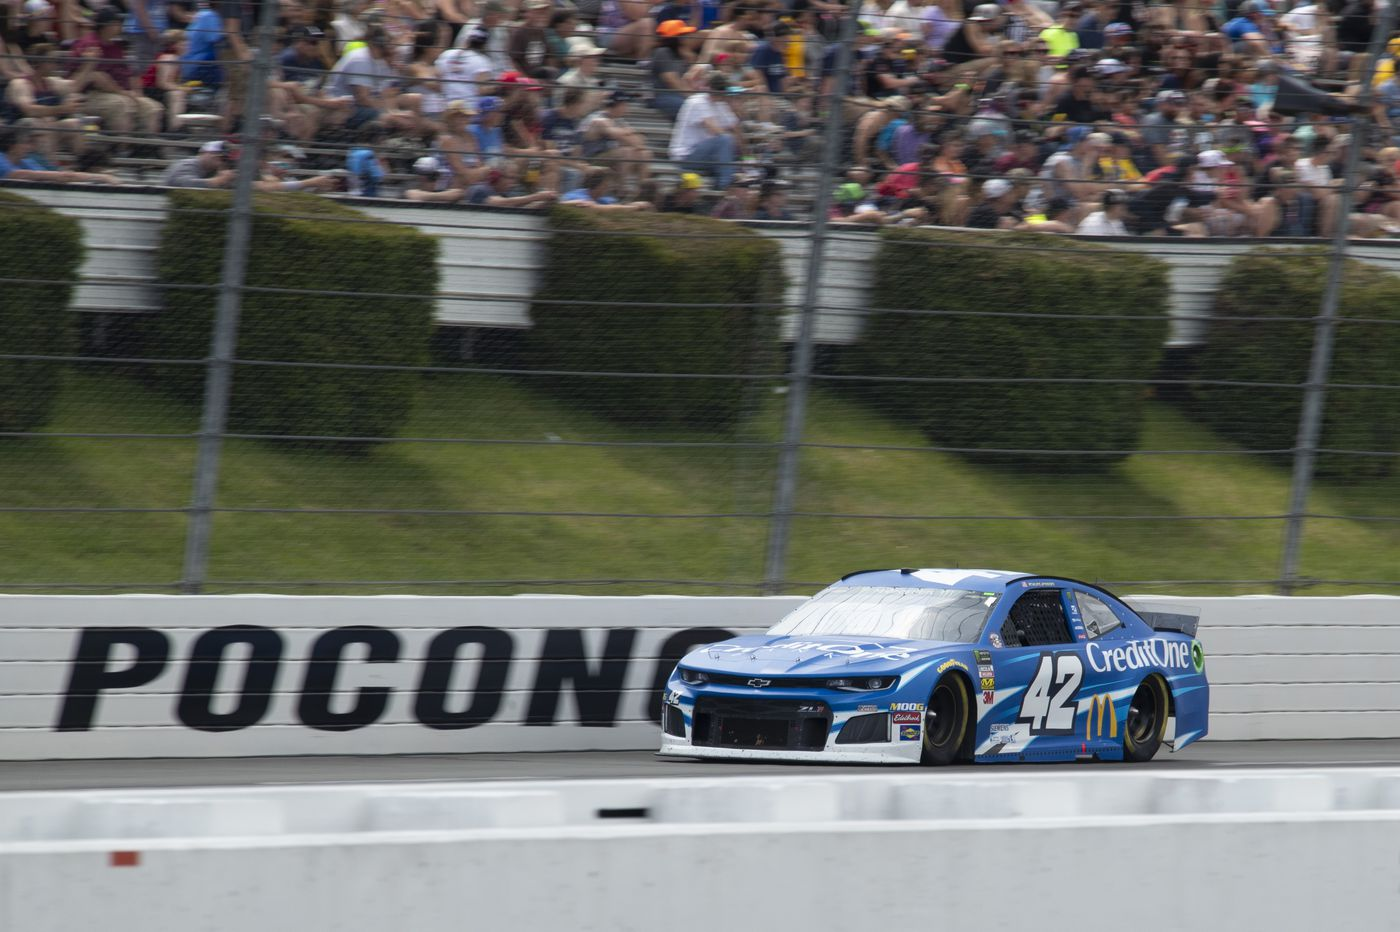 Pocono Raceway hosting first Cup Series weekend doubleheader in modern NASCAR history